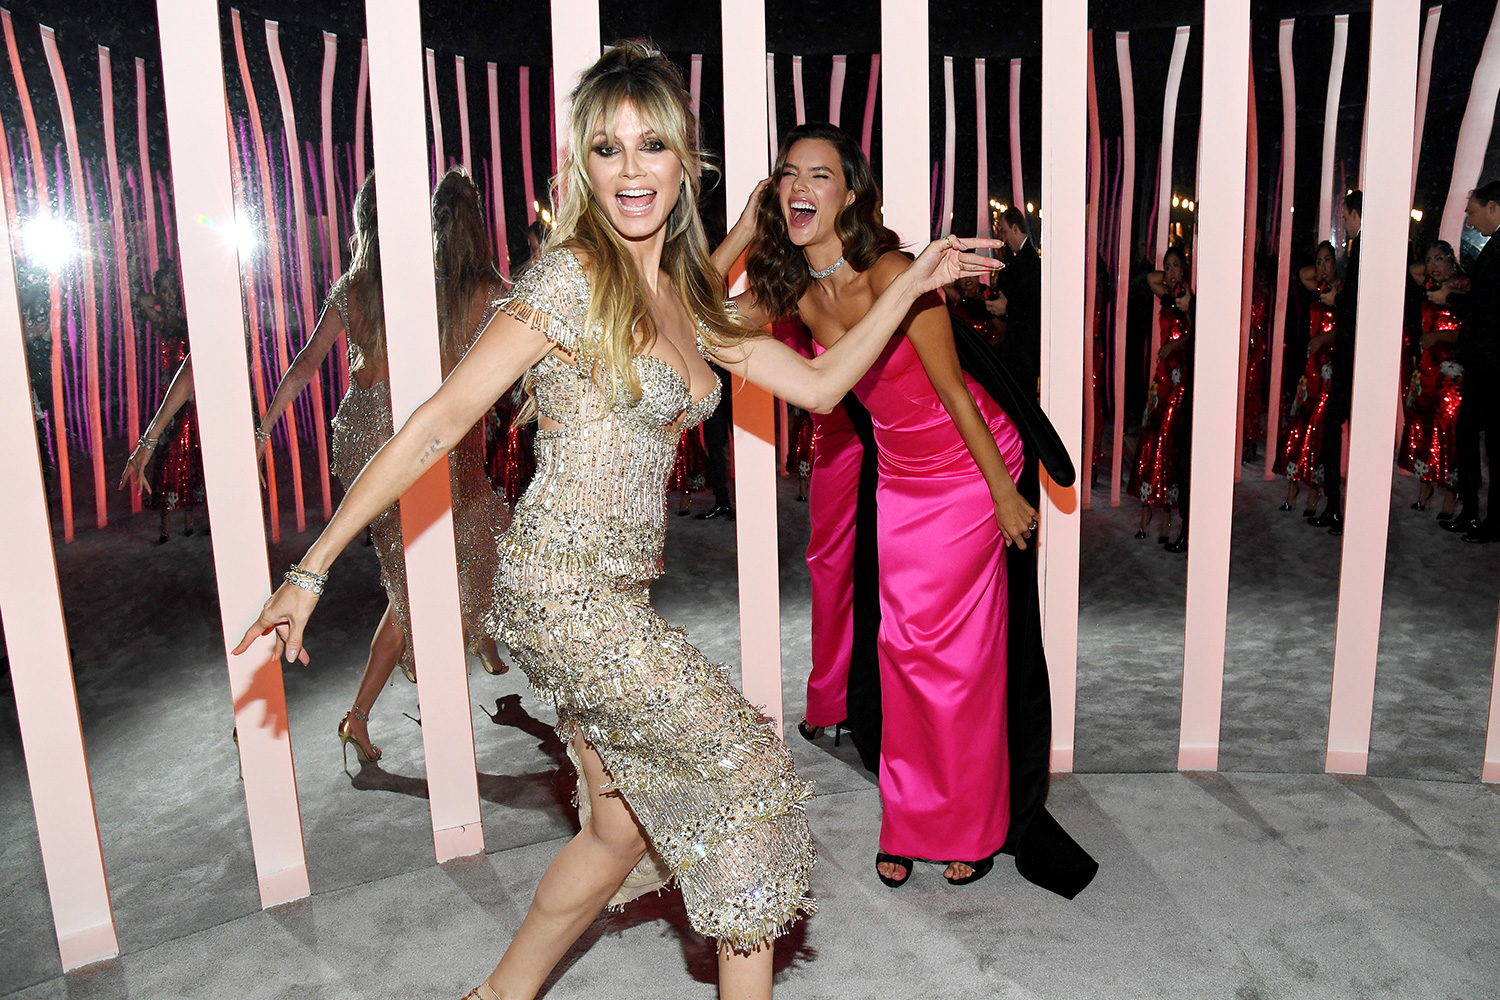 Heidi Klum and Alessandra Ambrosio attend the 2020 Vanity Fair Oscar Party hosted by Radhika Jones at Wallis Annenberg Center for the Performing Arts on February 09, 2020 in Beverly Hills, California